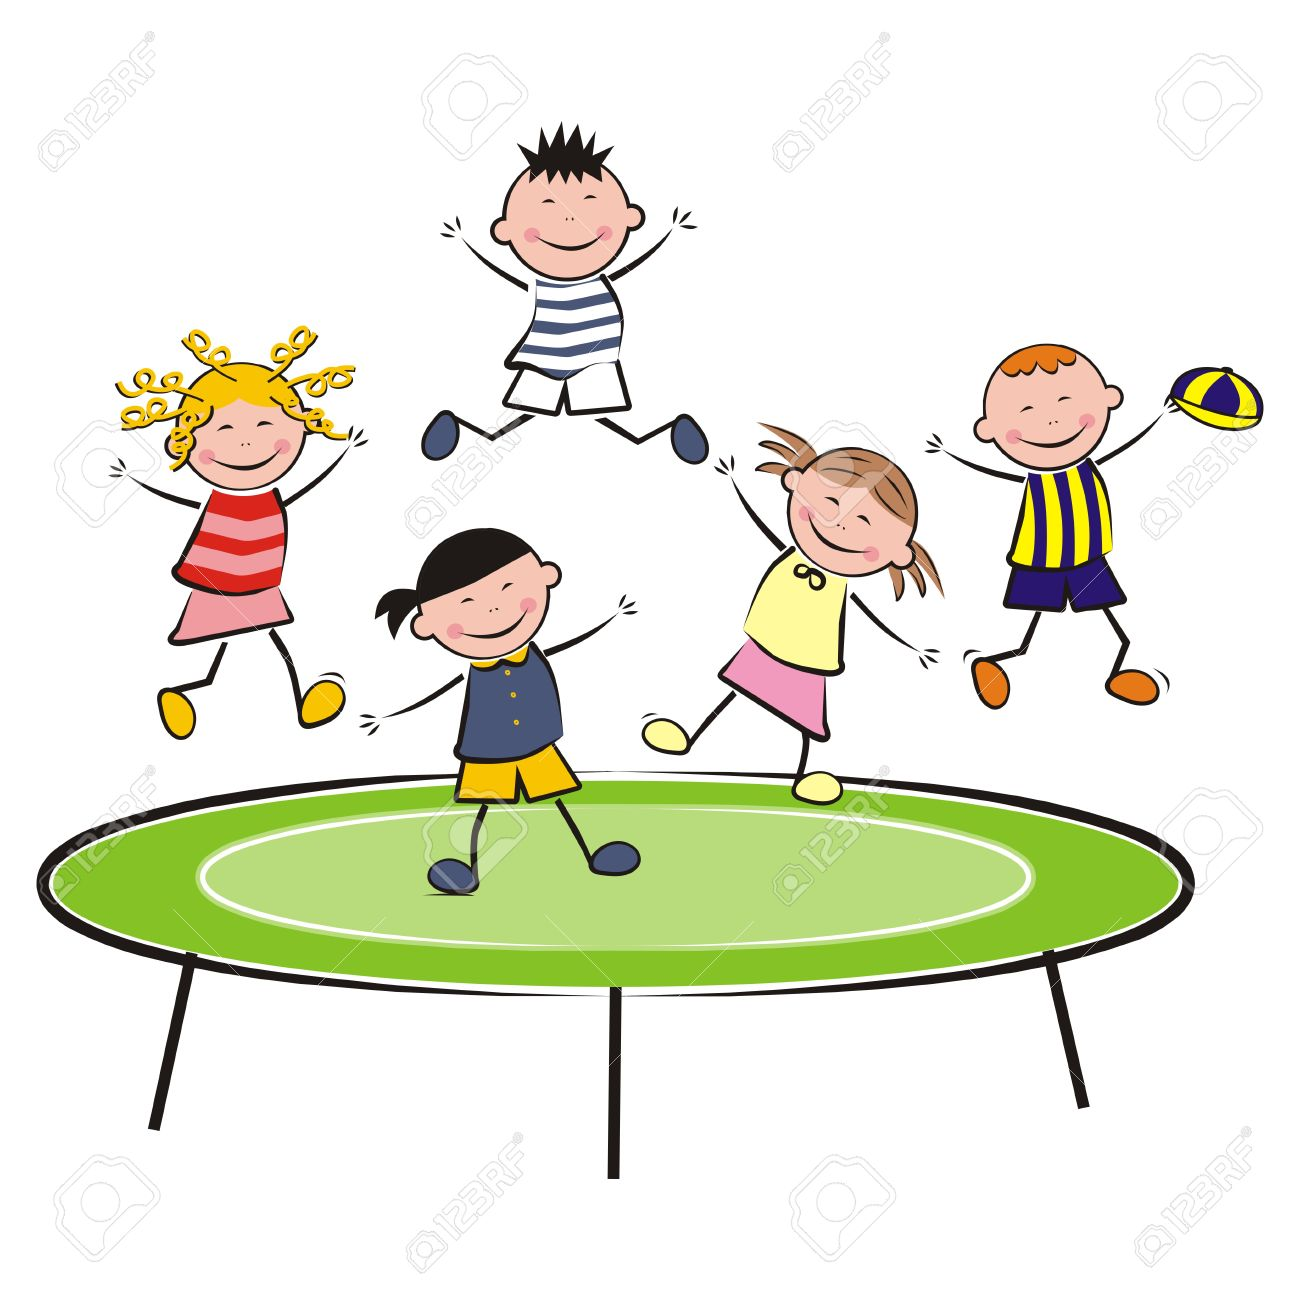 Kids jumping clipart clip royalty free Kids jumping clipart 4 » Clipart Station clip royalty free